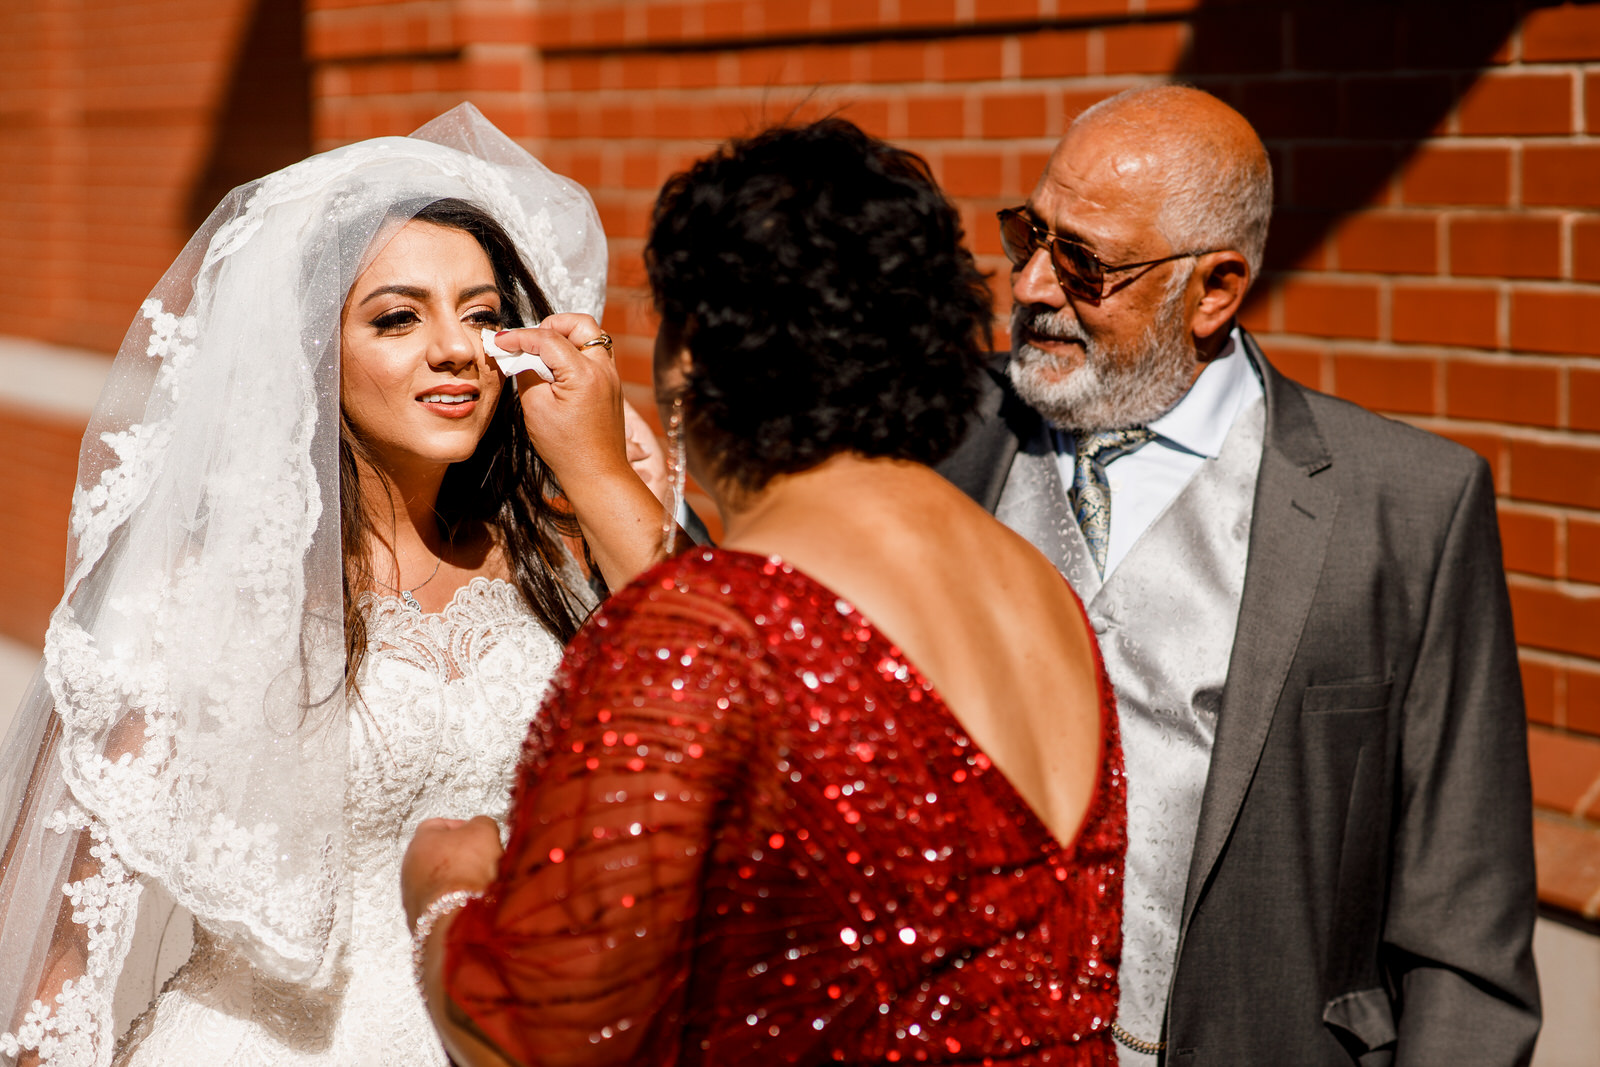 mother wiping brides eye